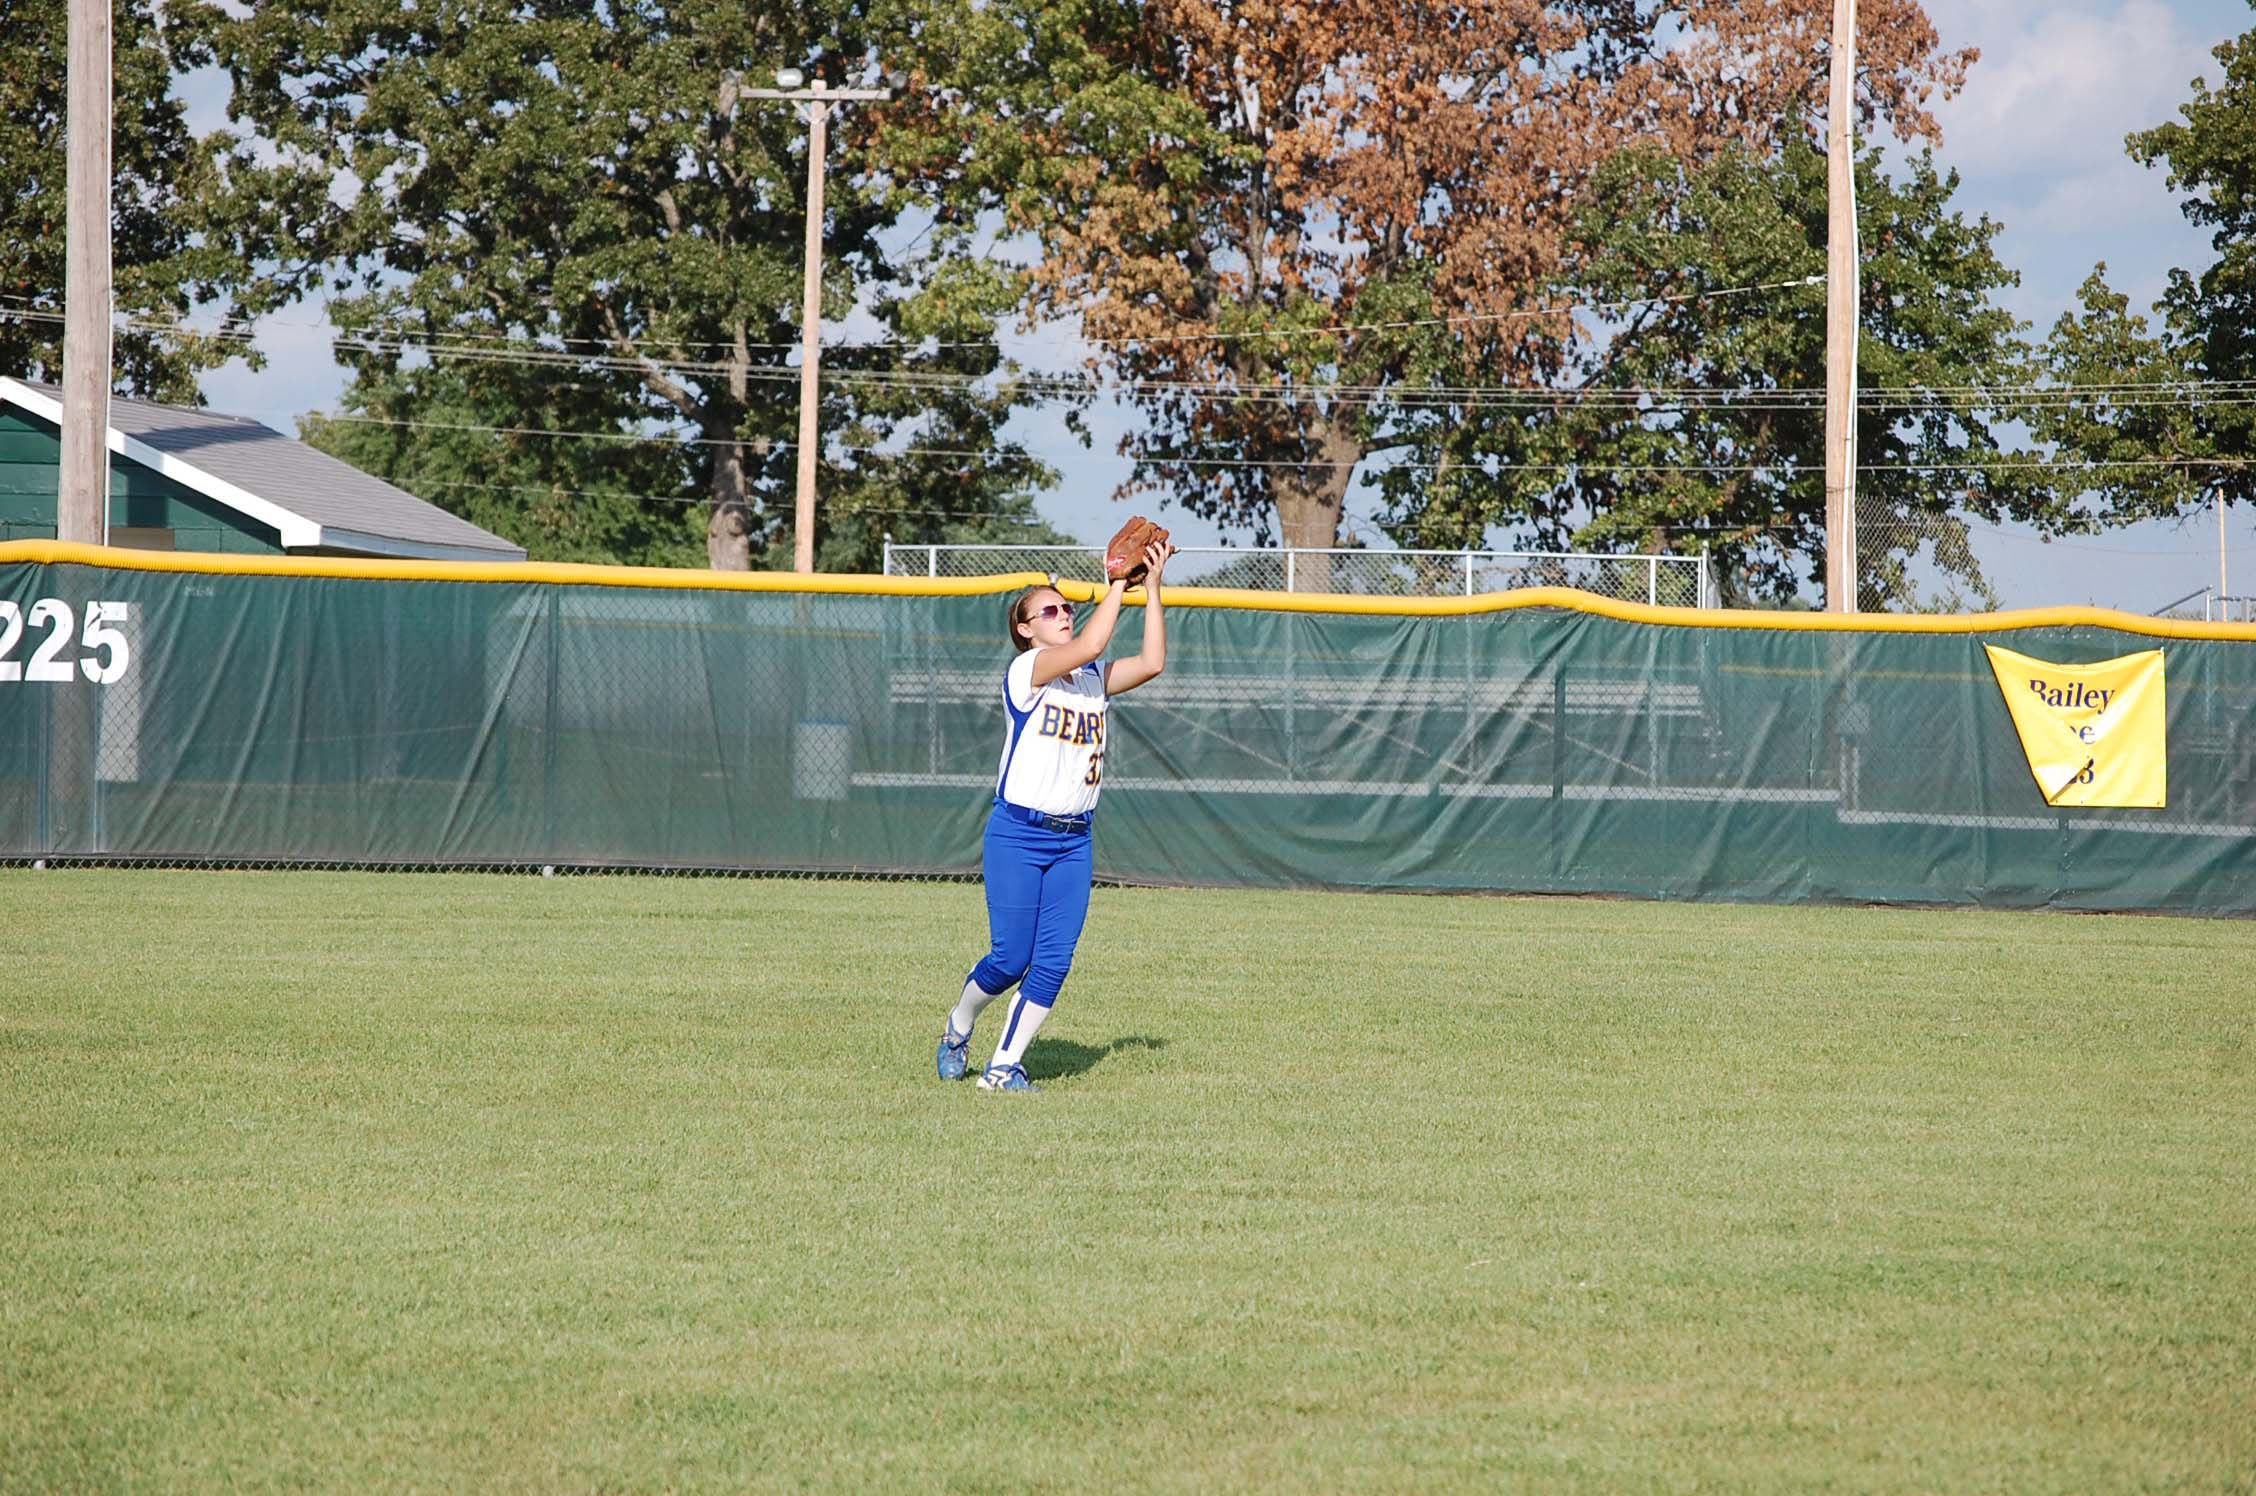 Junior Callie Eubanks squeezes the ball for the sure out on a pop fly to center field in the Dora game here last Thursday.